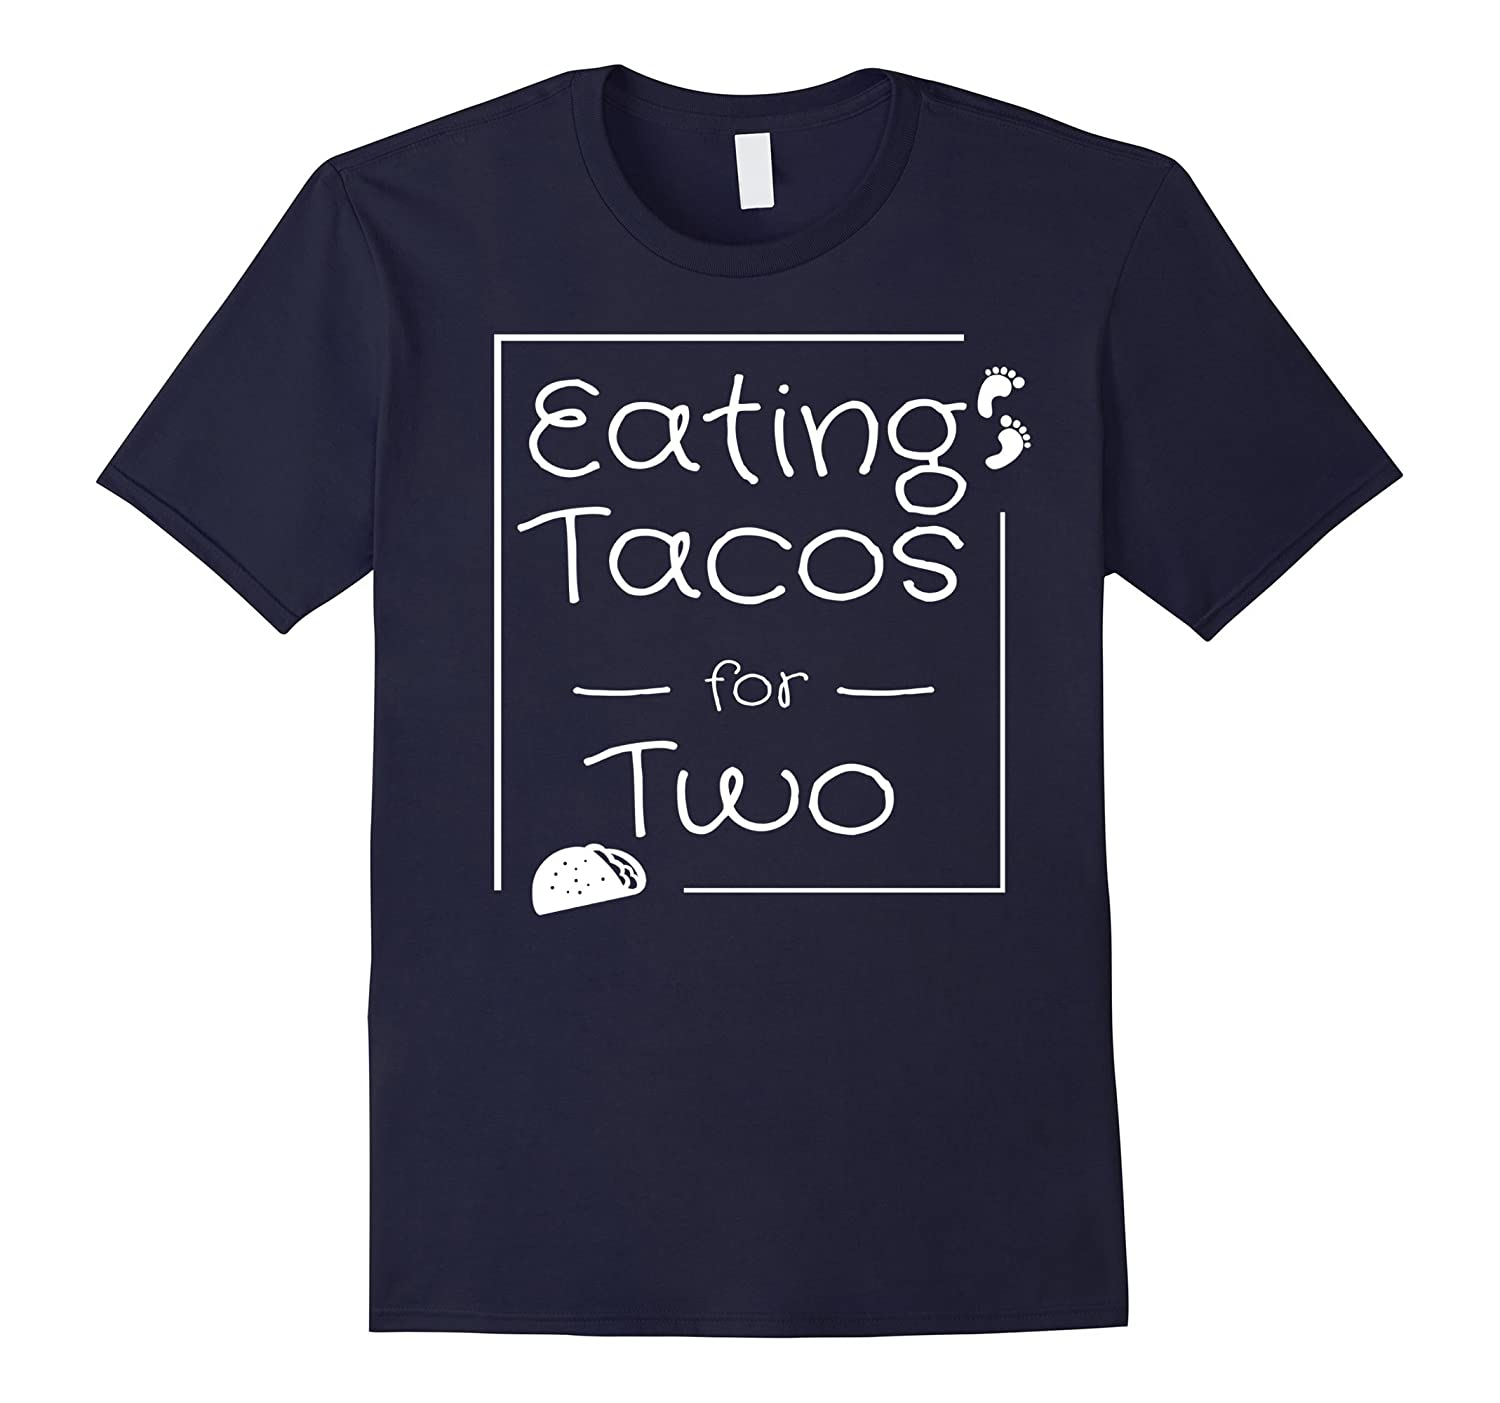 Eating Tacos for Two Maternity Shirt, Pregnant Mom Tee-Art